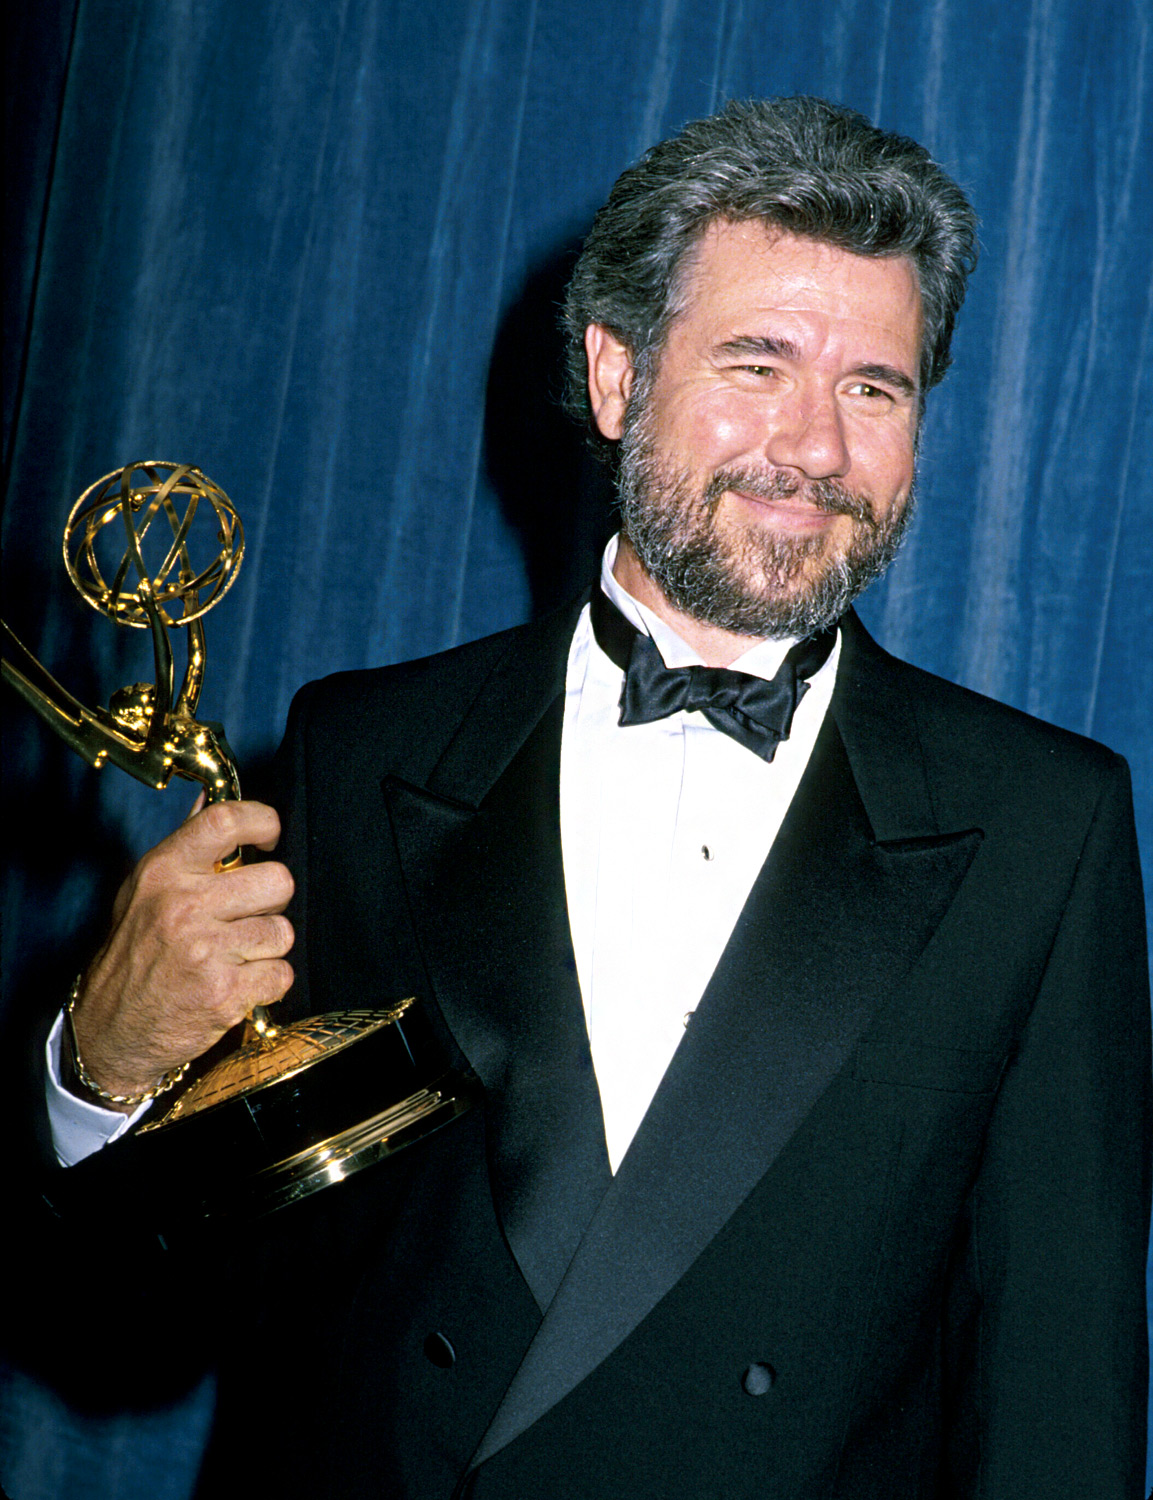 Earning five Emmy Awards throughout his career, Night Court 's Larroquette opted out of the 1989 nominations to give his fellow actors their due recognition. Larroquette, known for his role as Dan Fielding, hosted the award show instead.